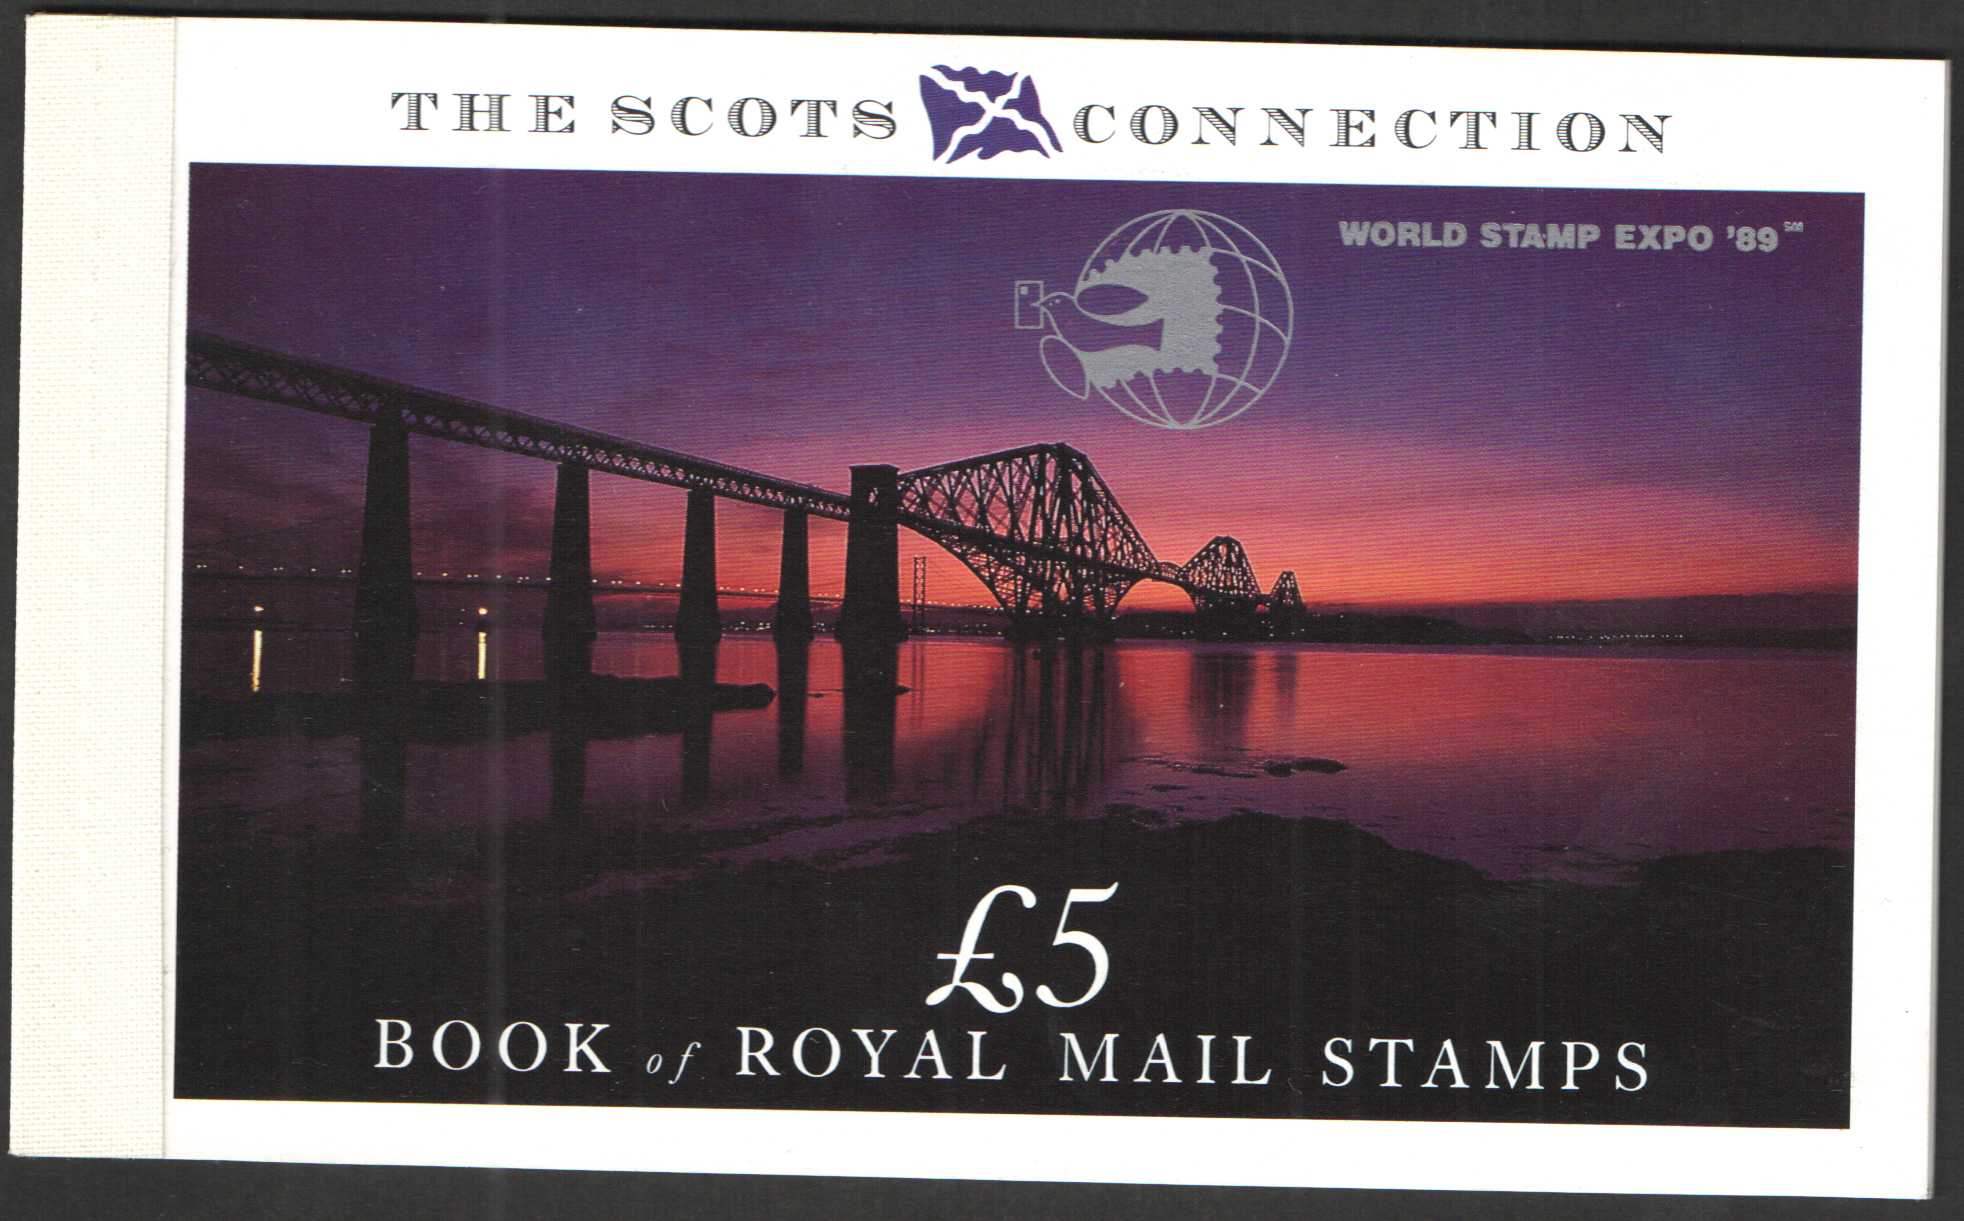 DX10 / DB5(10) World Stamp Expo Overprint 1989 Scots Connection Prestige Booklet